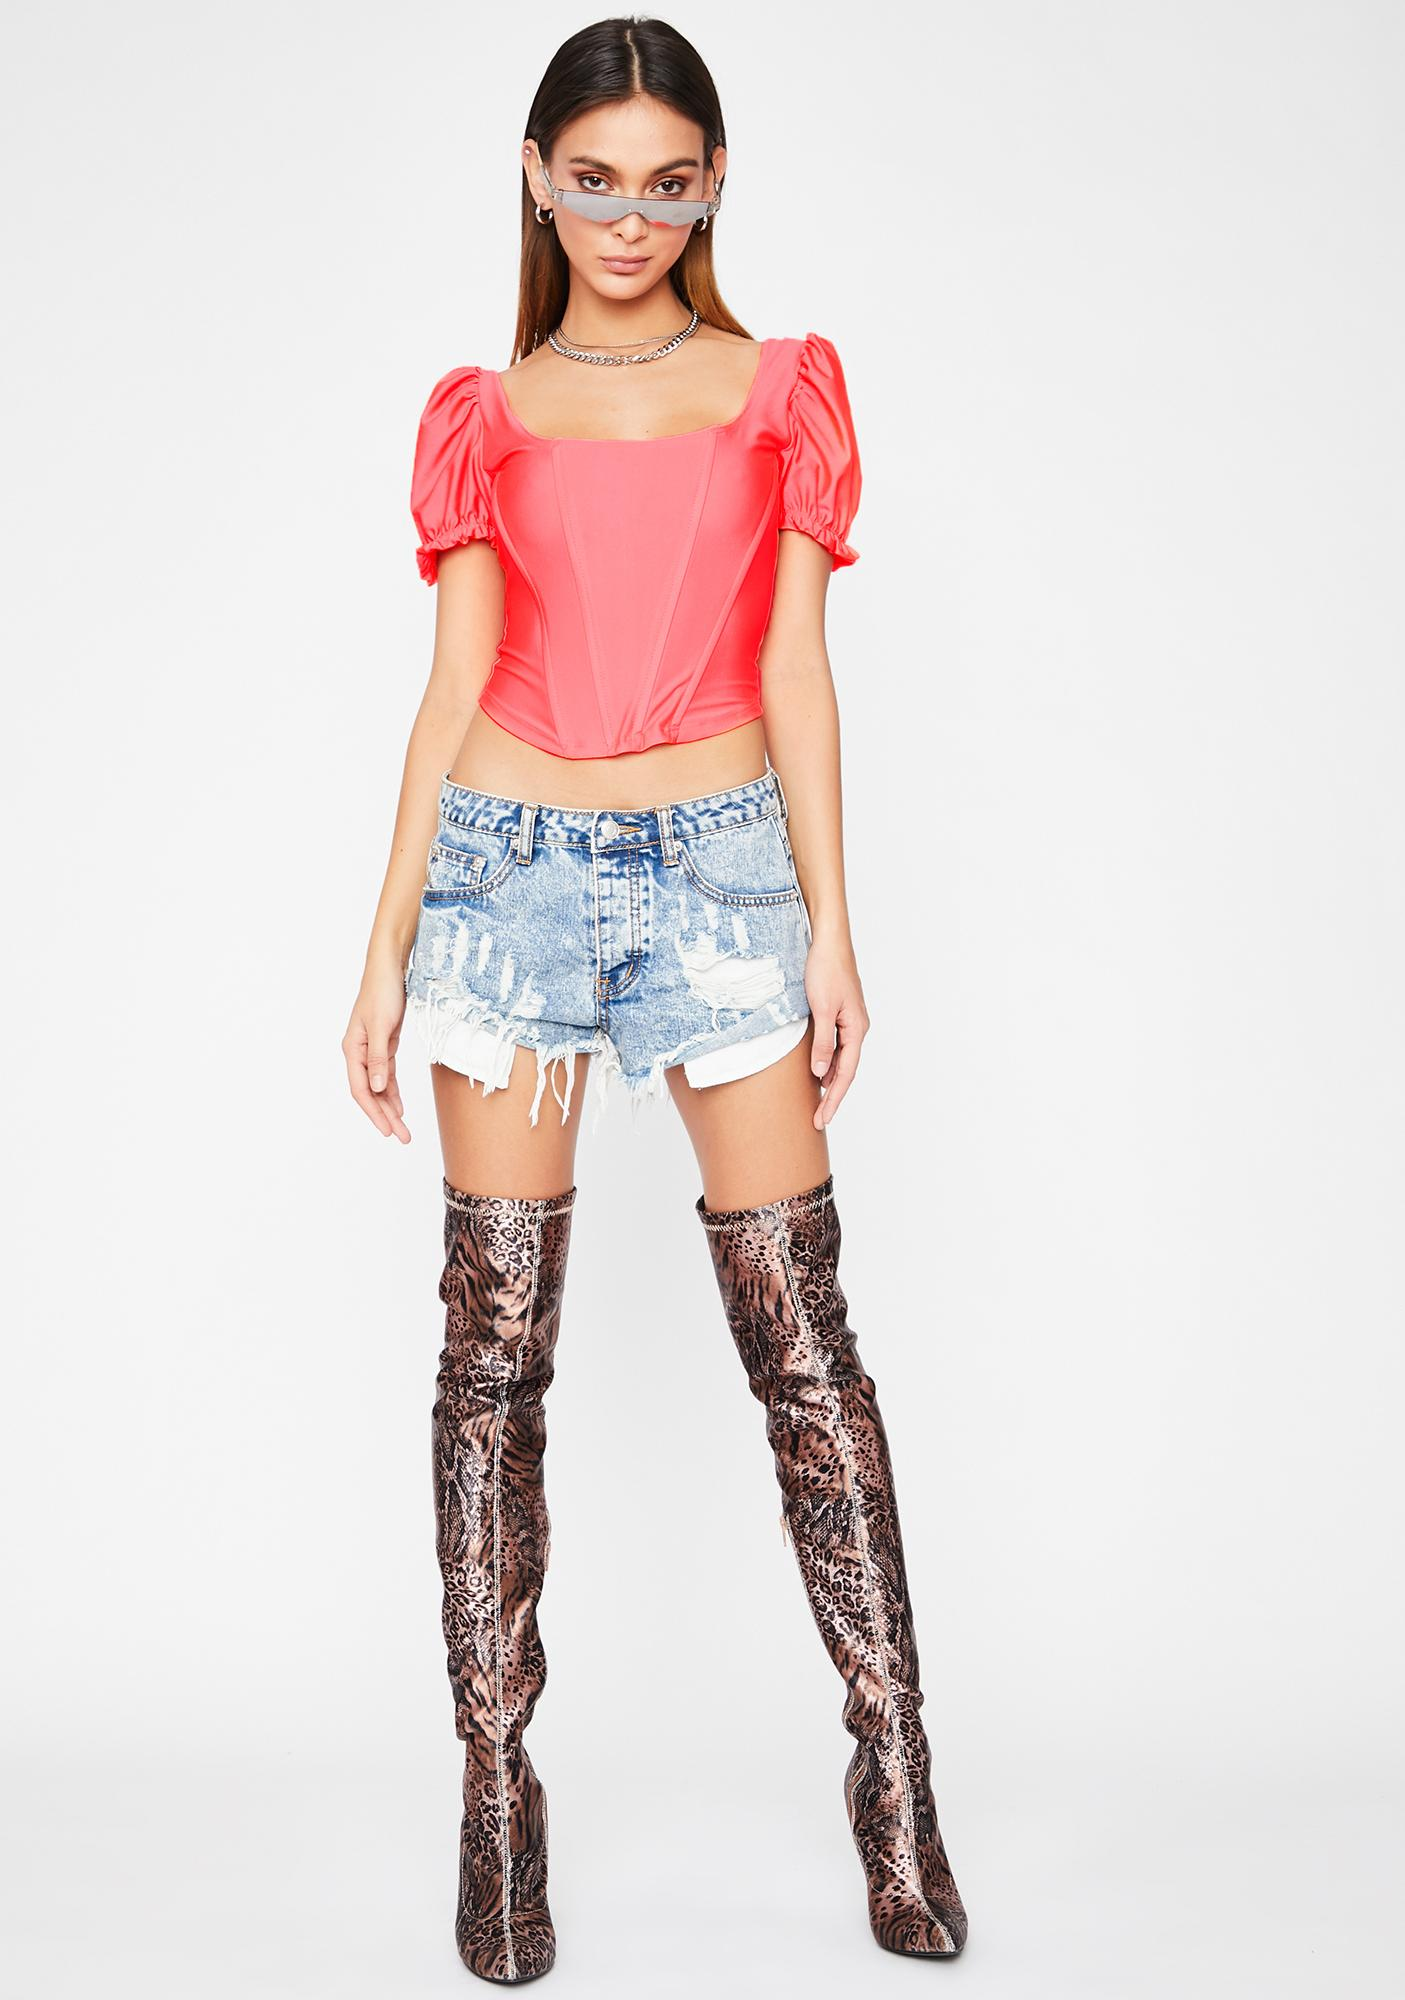 Juicy Not Your Toy Corset Blouse